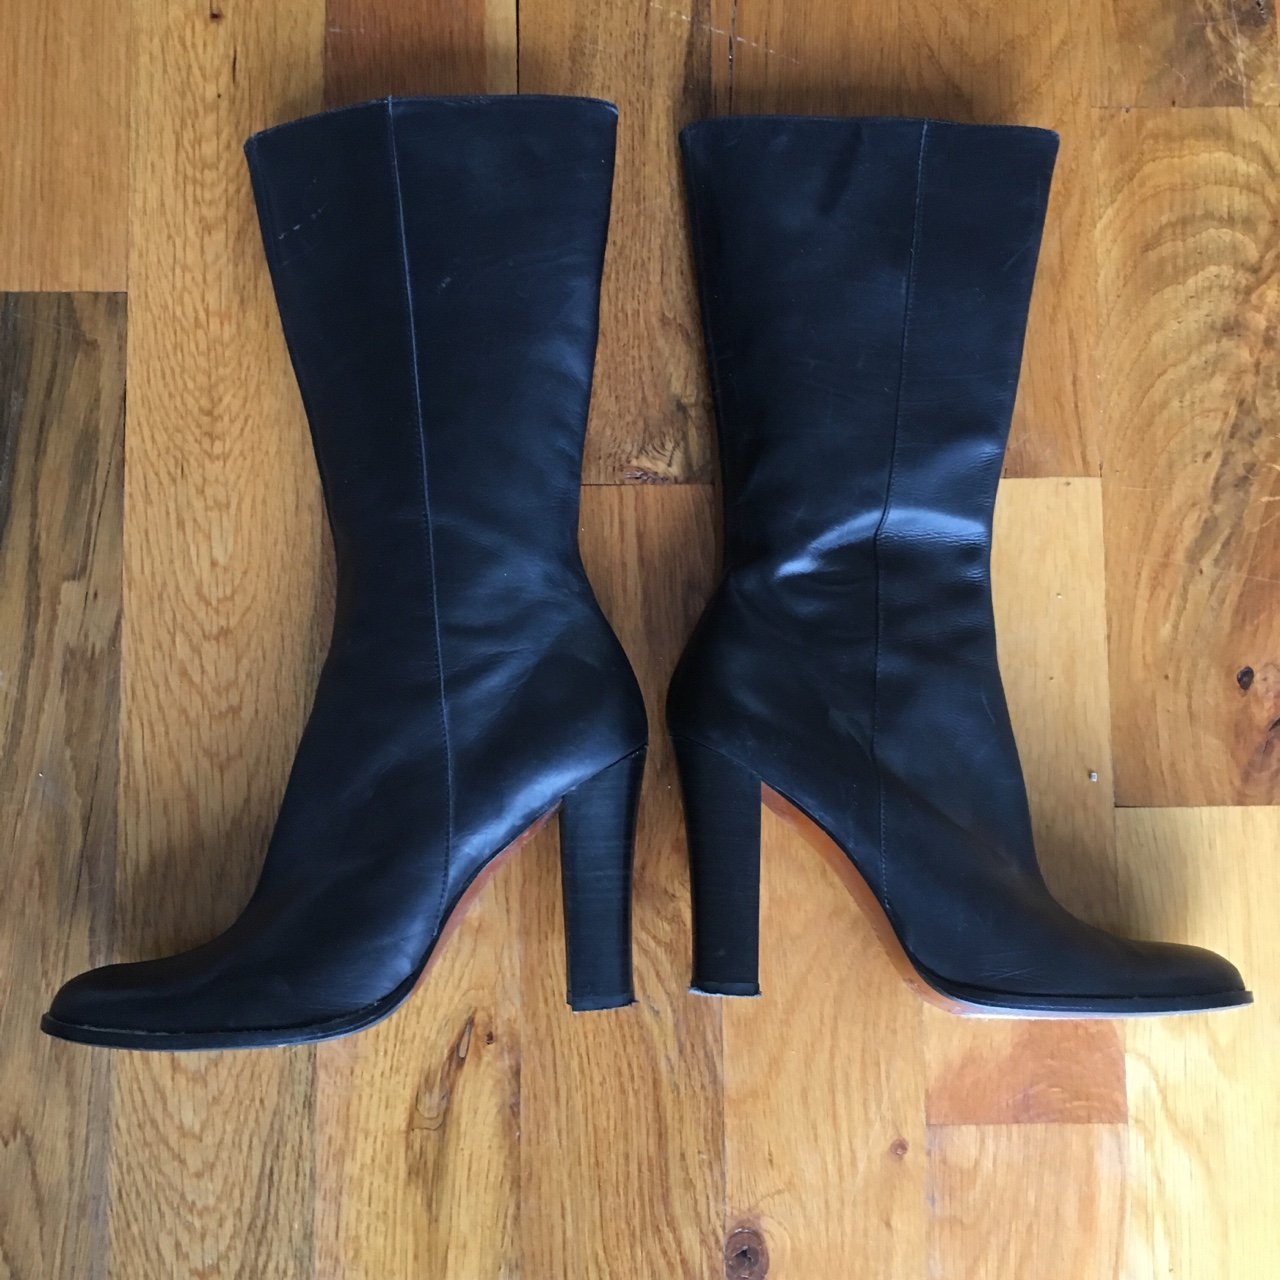 23d202ba897e  chrisflune. 4 months ago. United States. Buttery soft leather boots by Bebe  - size 8 matte black leather